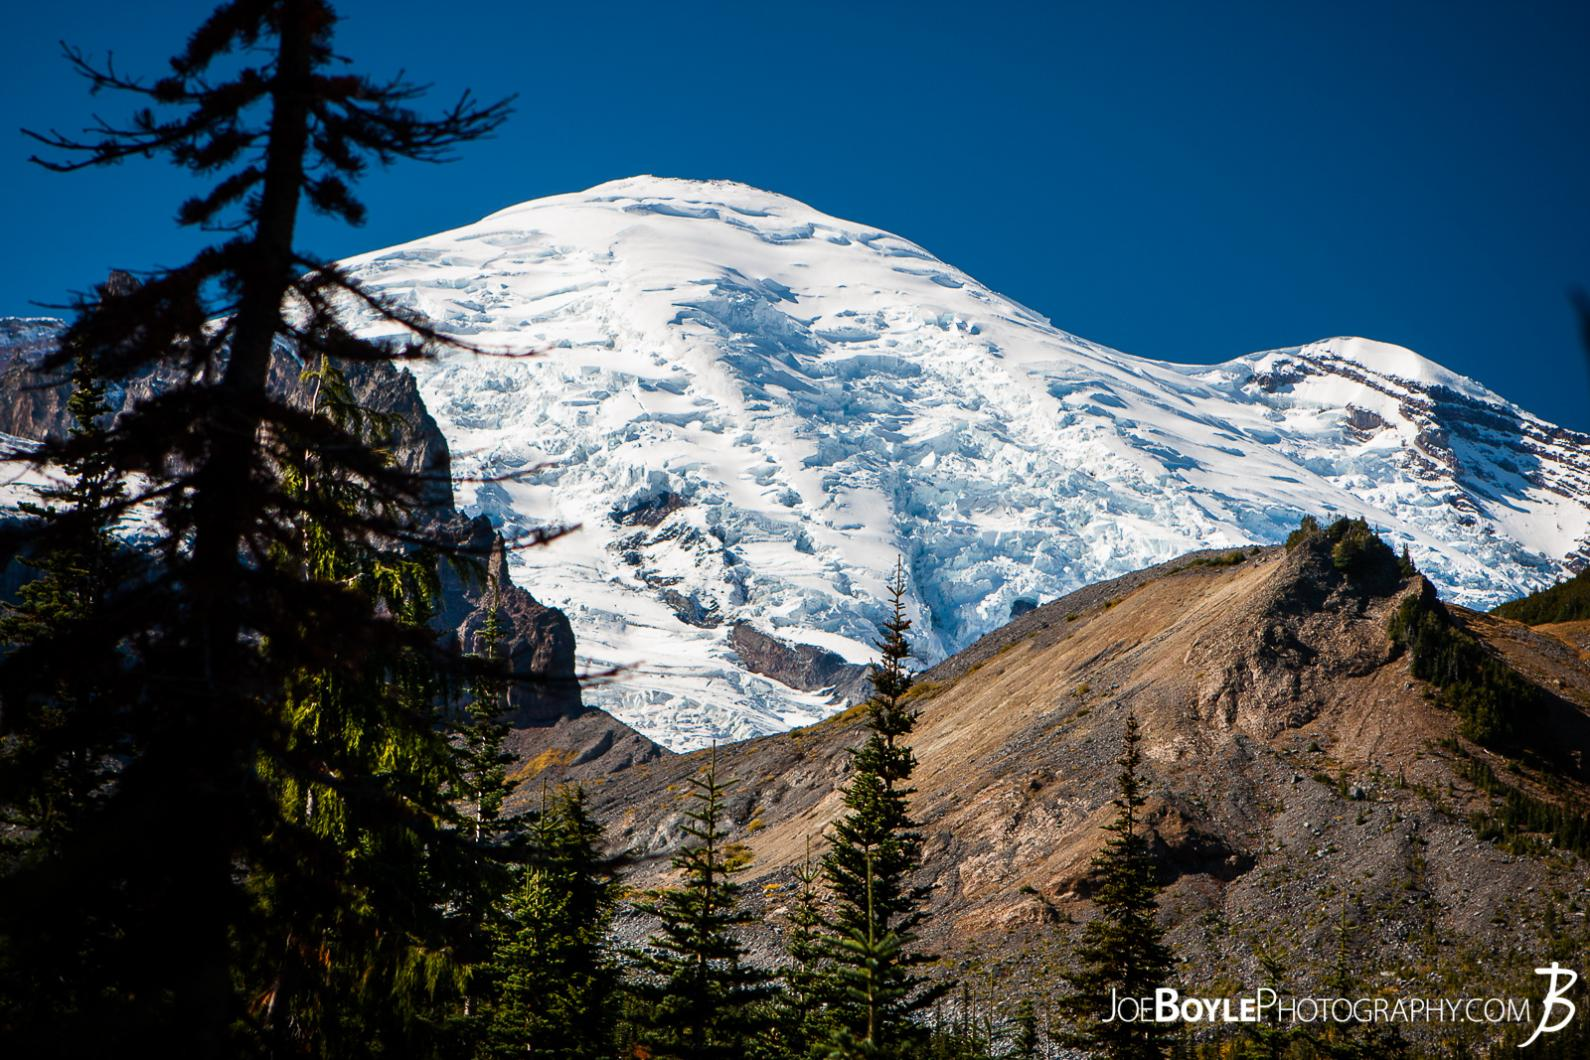 mount-rainier-with-trees-and-rocks-near-panhandle-gap